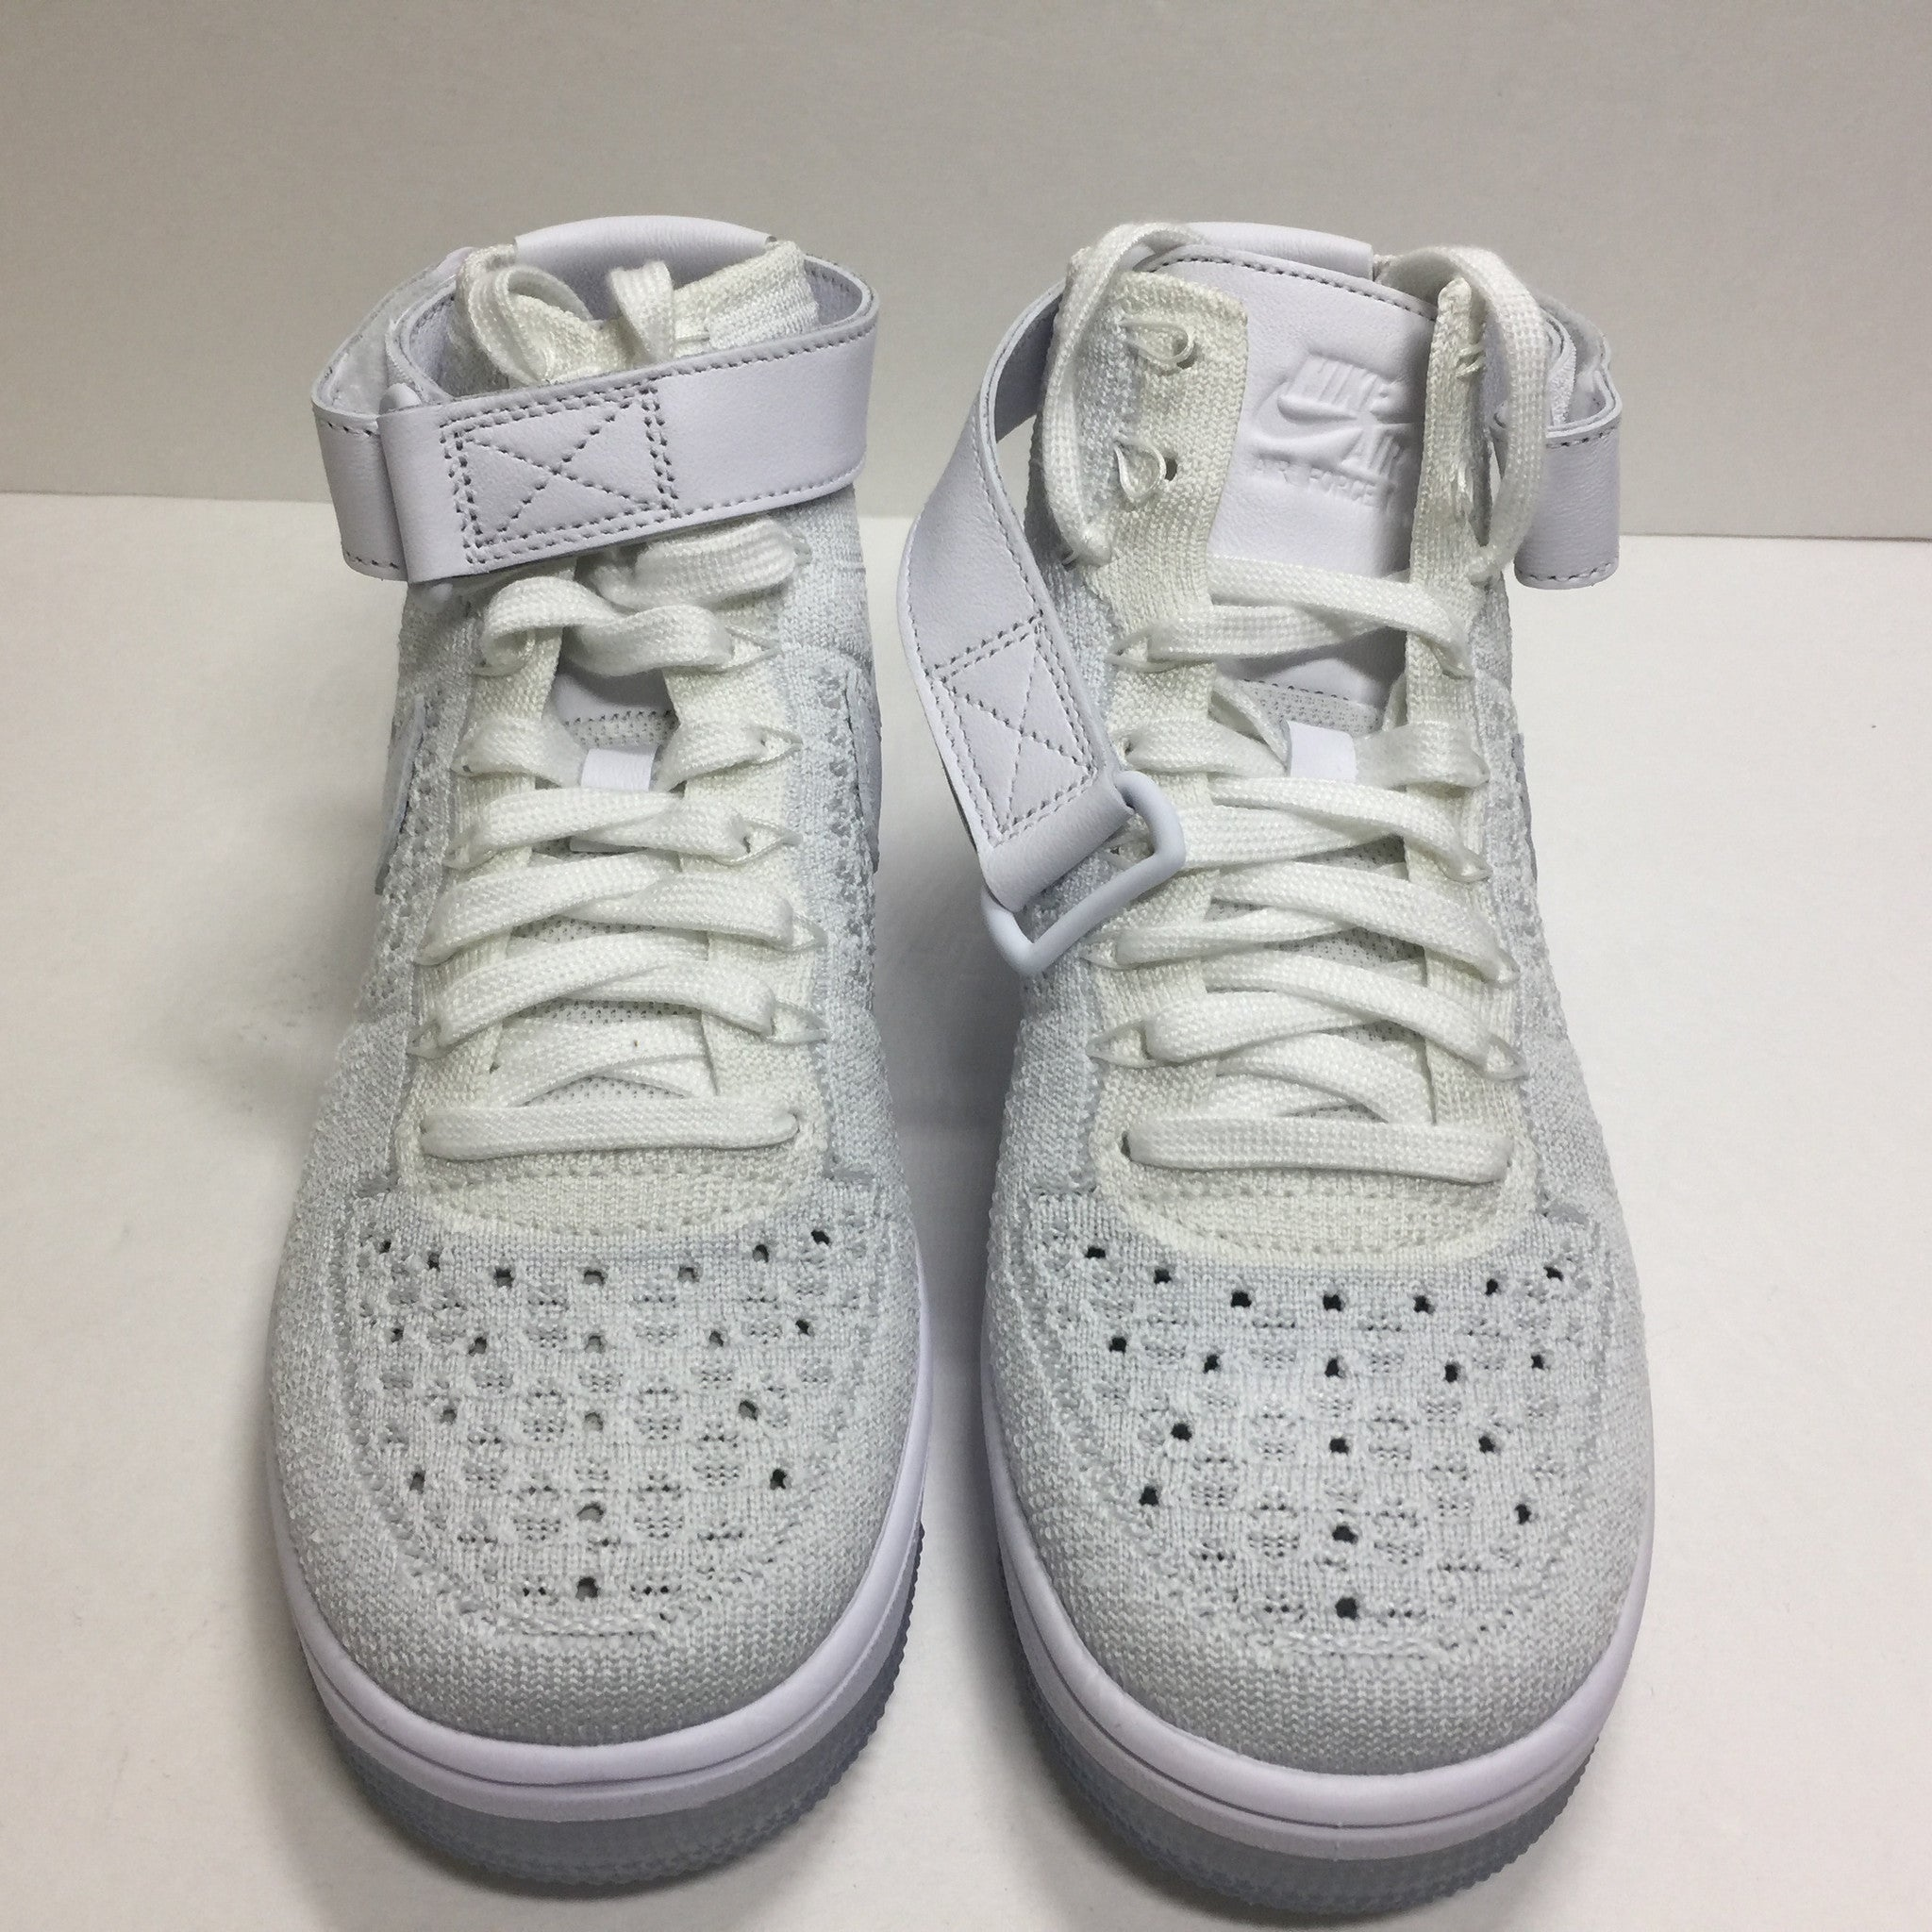 DS W Nike Air Force 1 Flyknit High White Size 6/6.5/Size 7.5 - DOPEFOOT  - 5